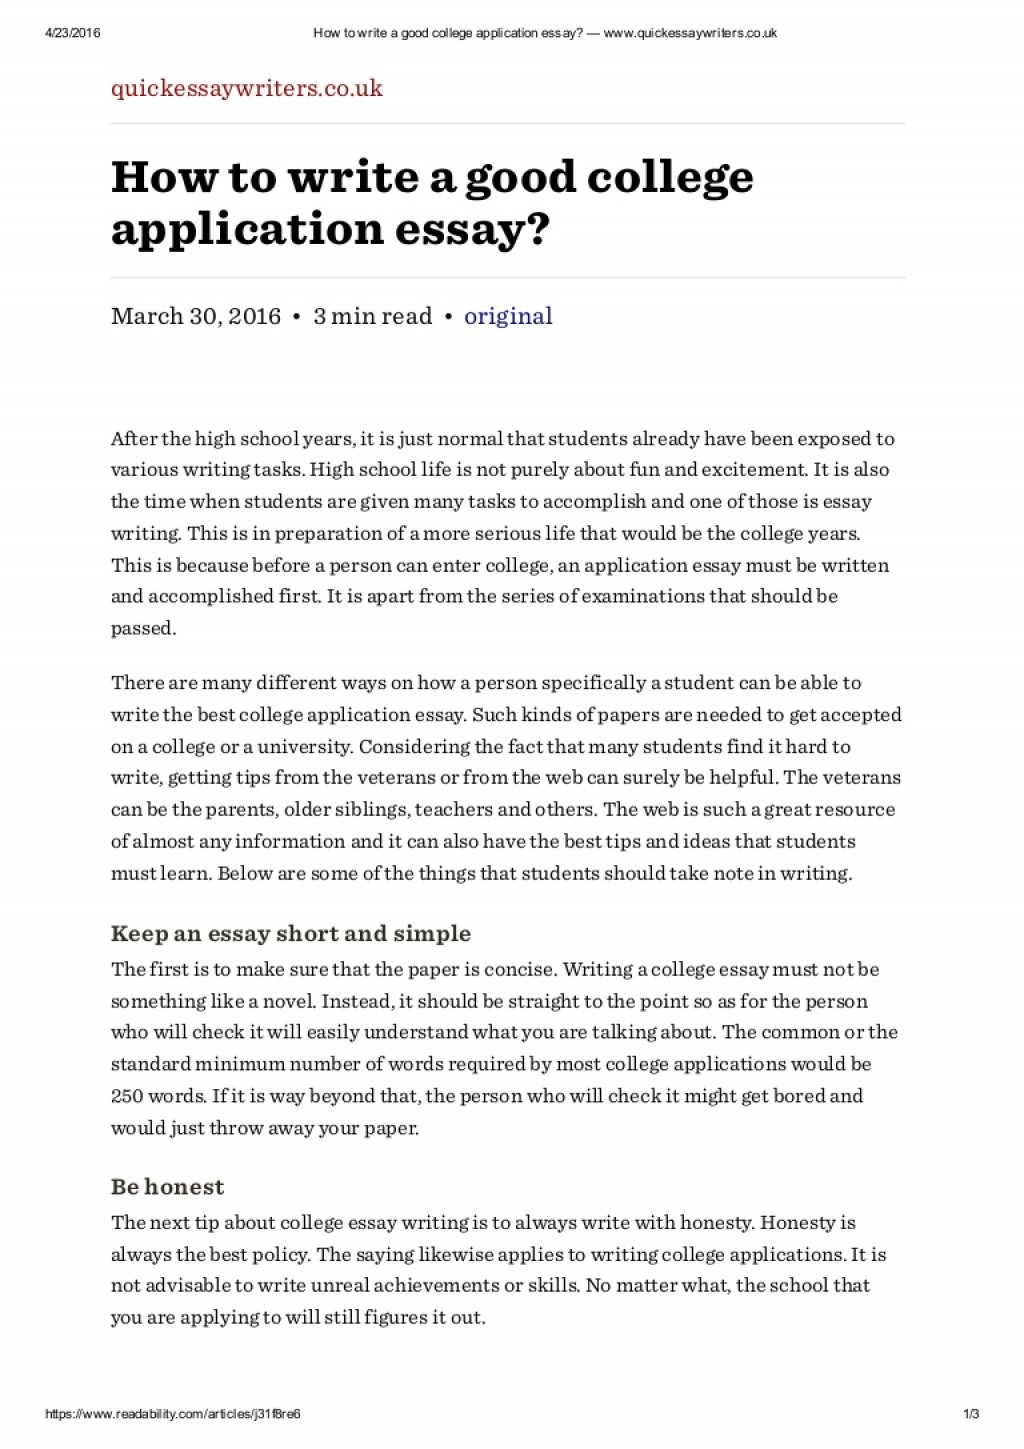 014 Howtowriteagoodcollegeapplicationessaywww Thumbnail College Acceptance Essay Striking Application Template App Topics Samples Large